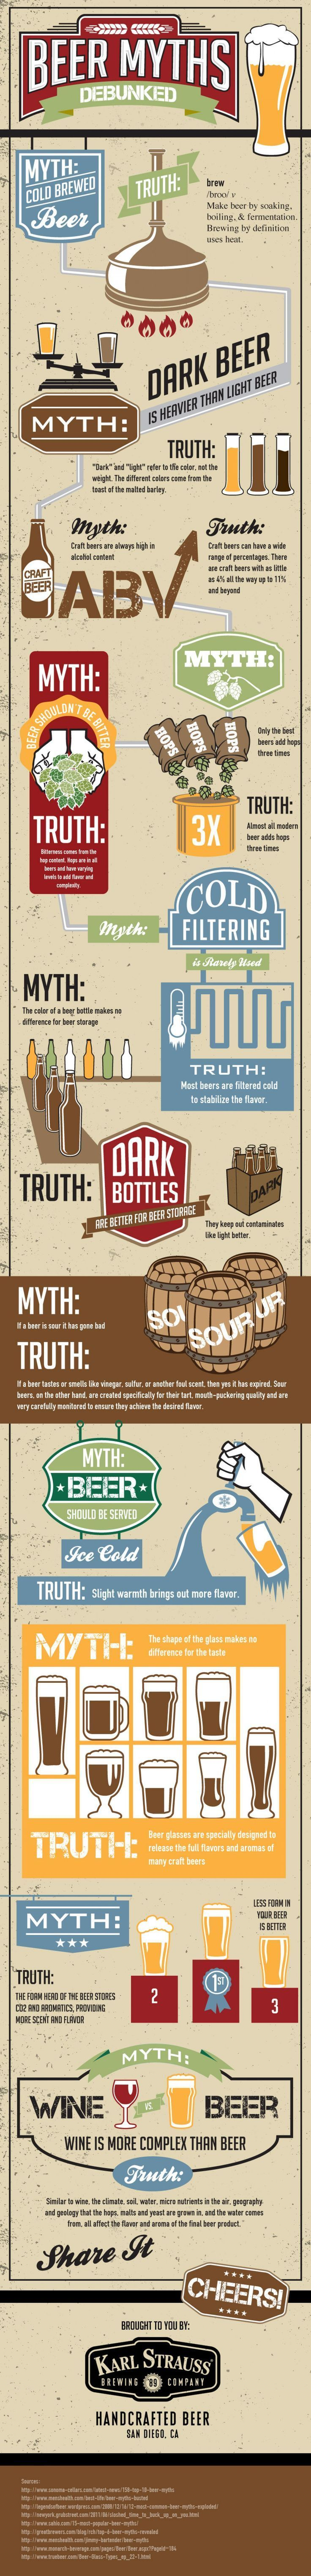 ️Beer Myths